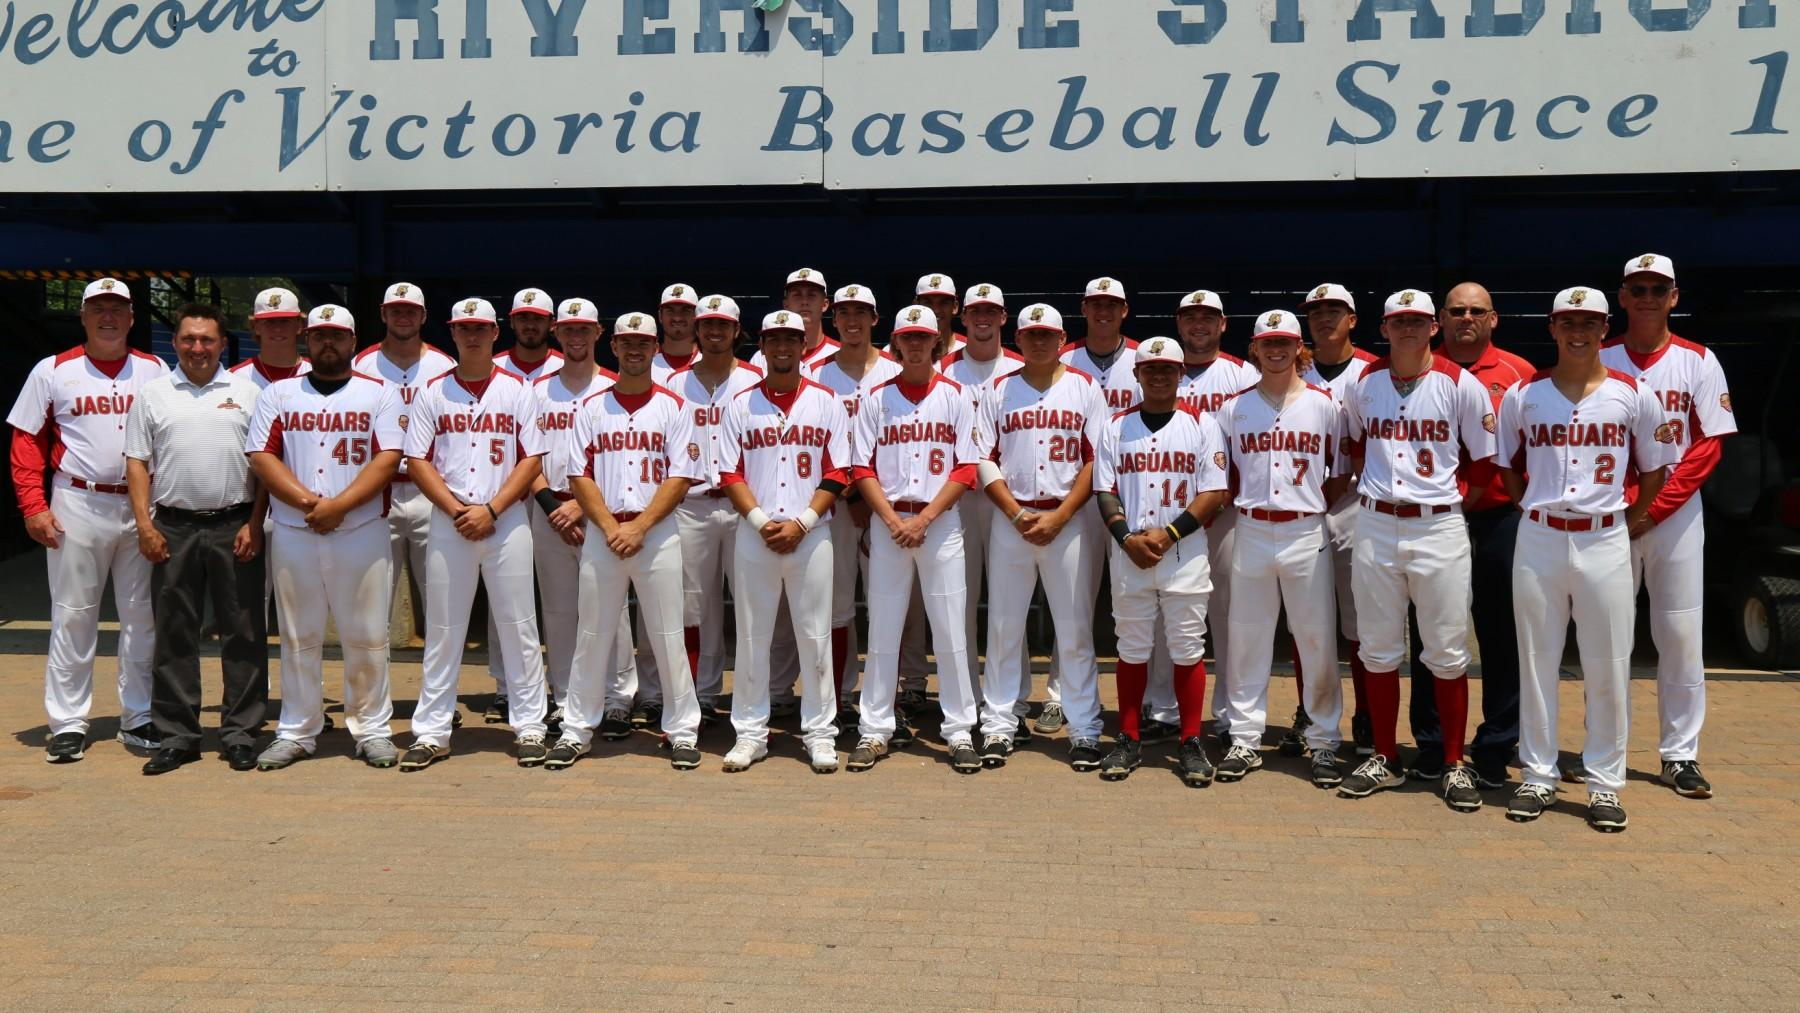 UHV baseball wins Champions of Character award